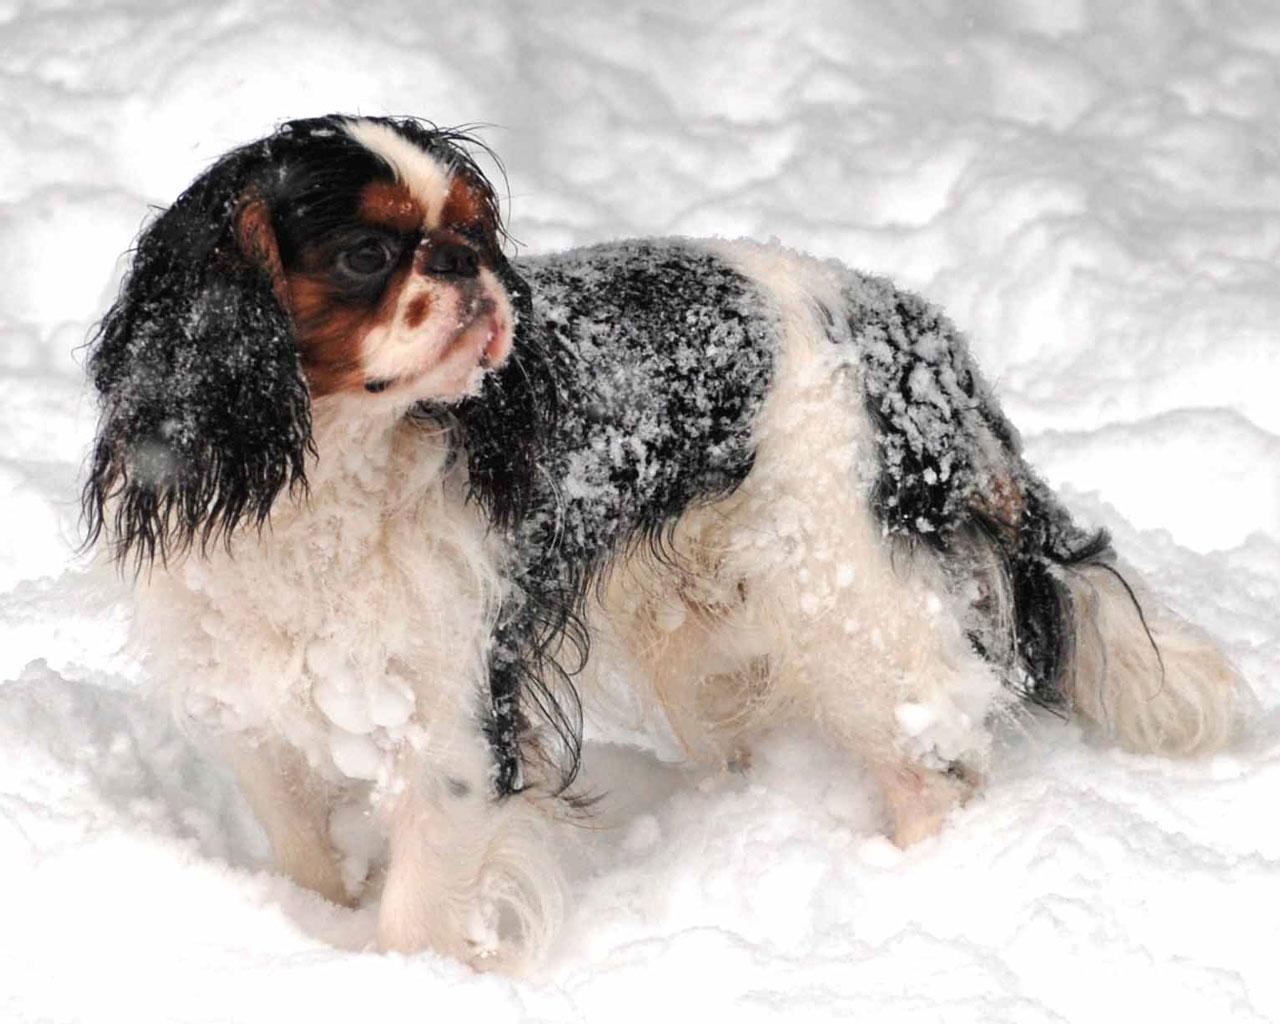 English Toy Spaniel - In the Snow Wallpaper #1 1280 x 1024